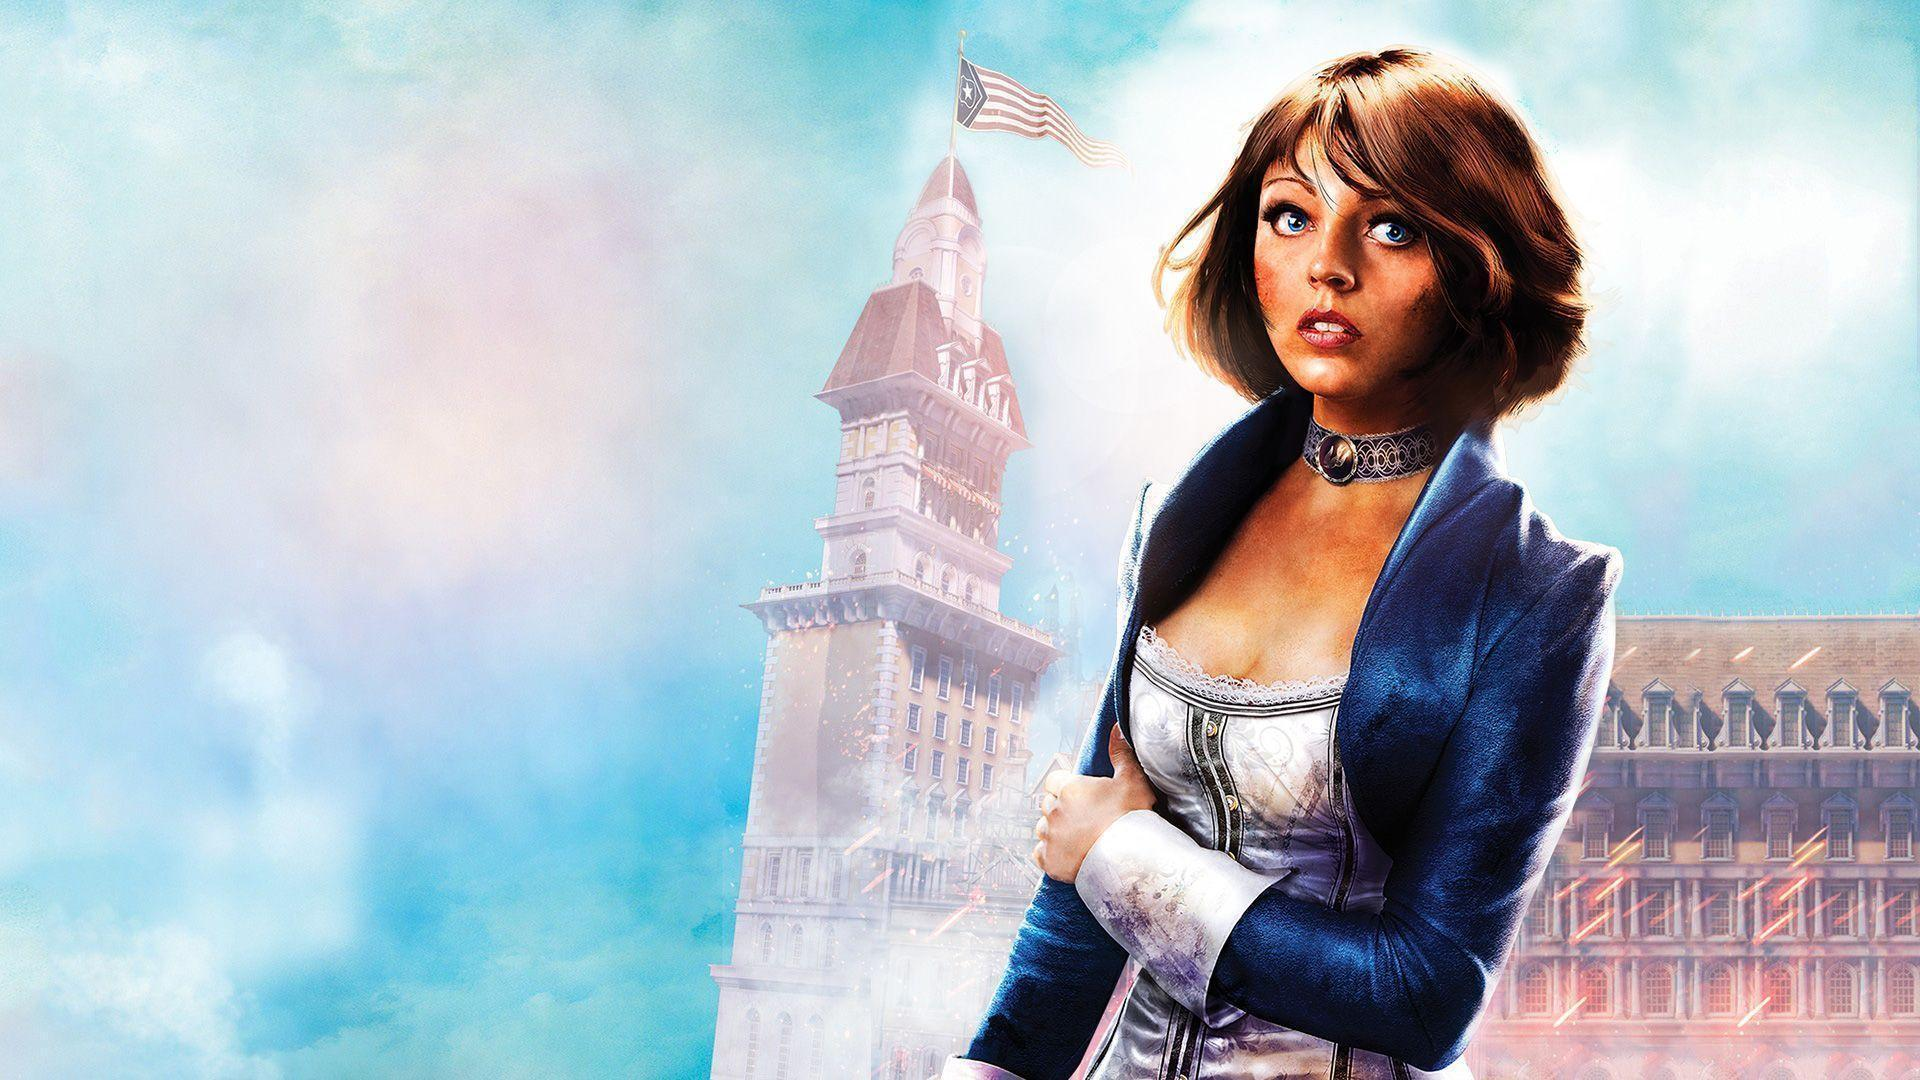 Wallpapers For > Bioshock Infinite Wallpapers 1600x900